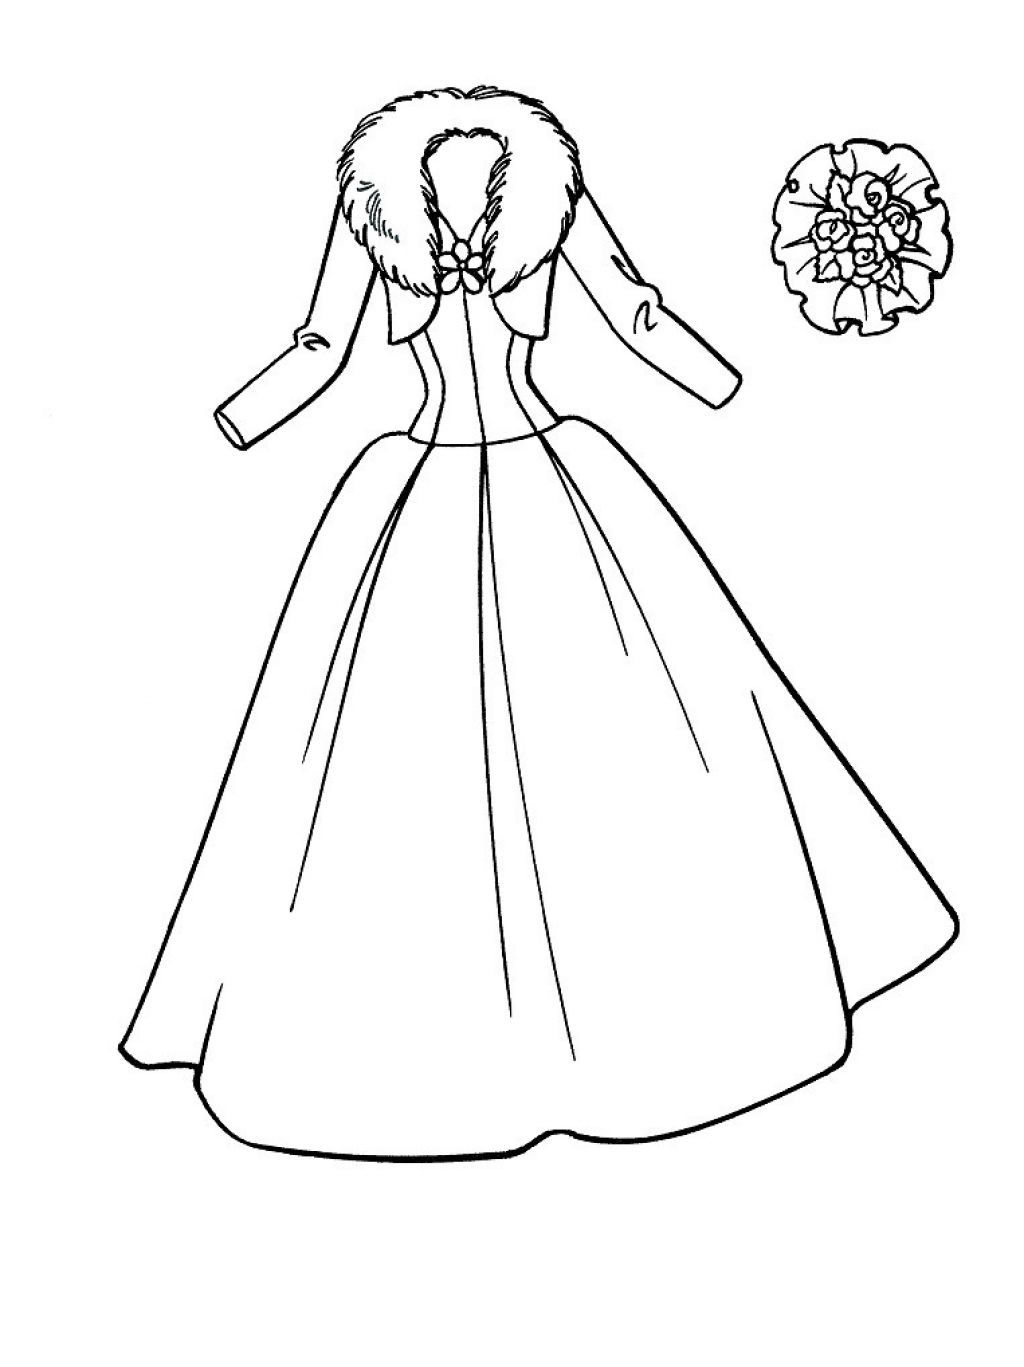 Nice Coloring Pages Of Girls In Dresses Free Download Wedding Coloring Pages Coloring Pages For Girls Barbie Coloring Pages